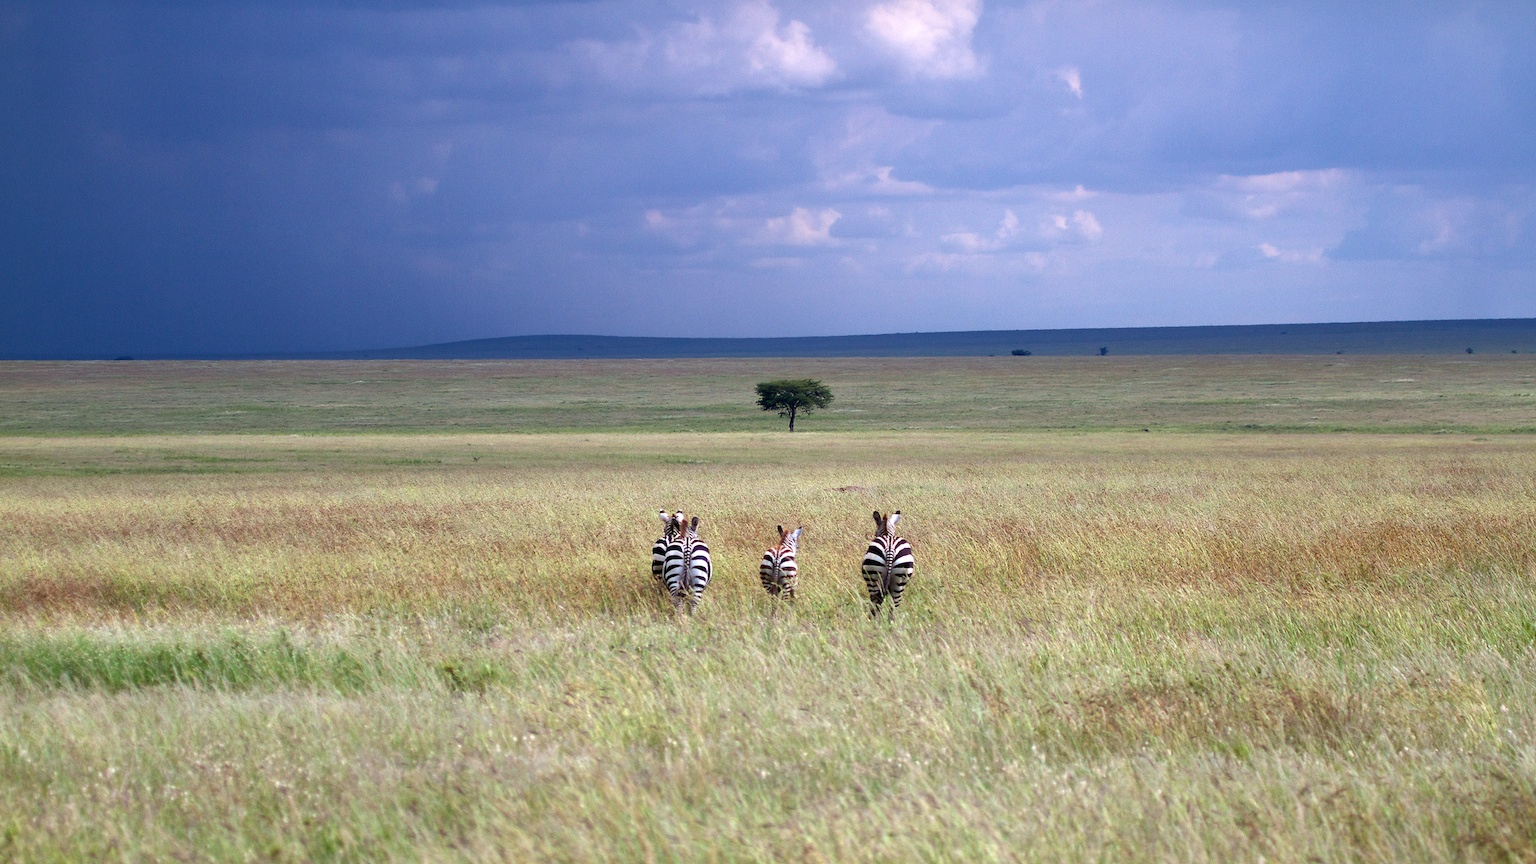 Serengeti, the endless plains